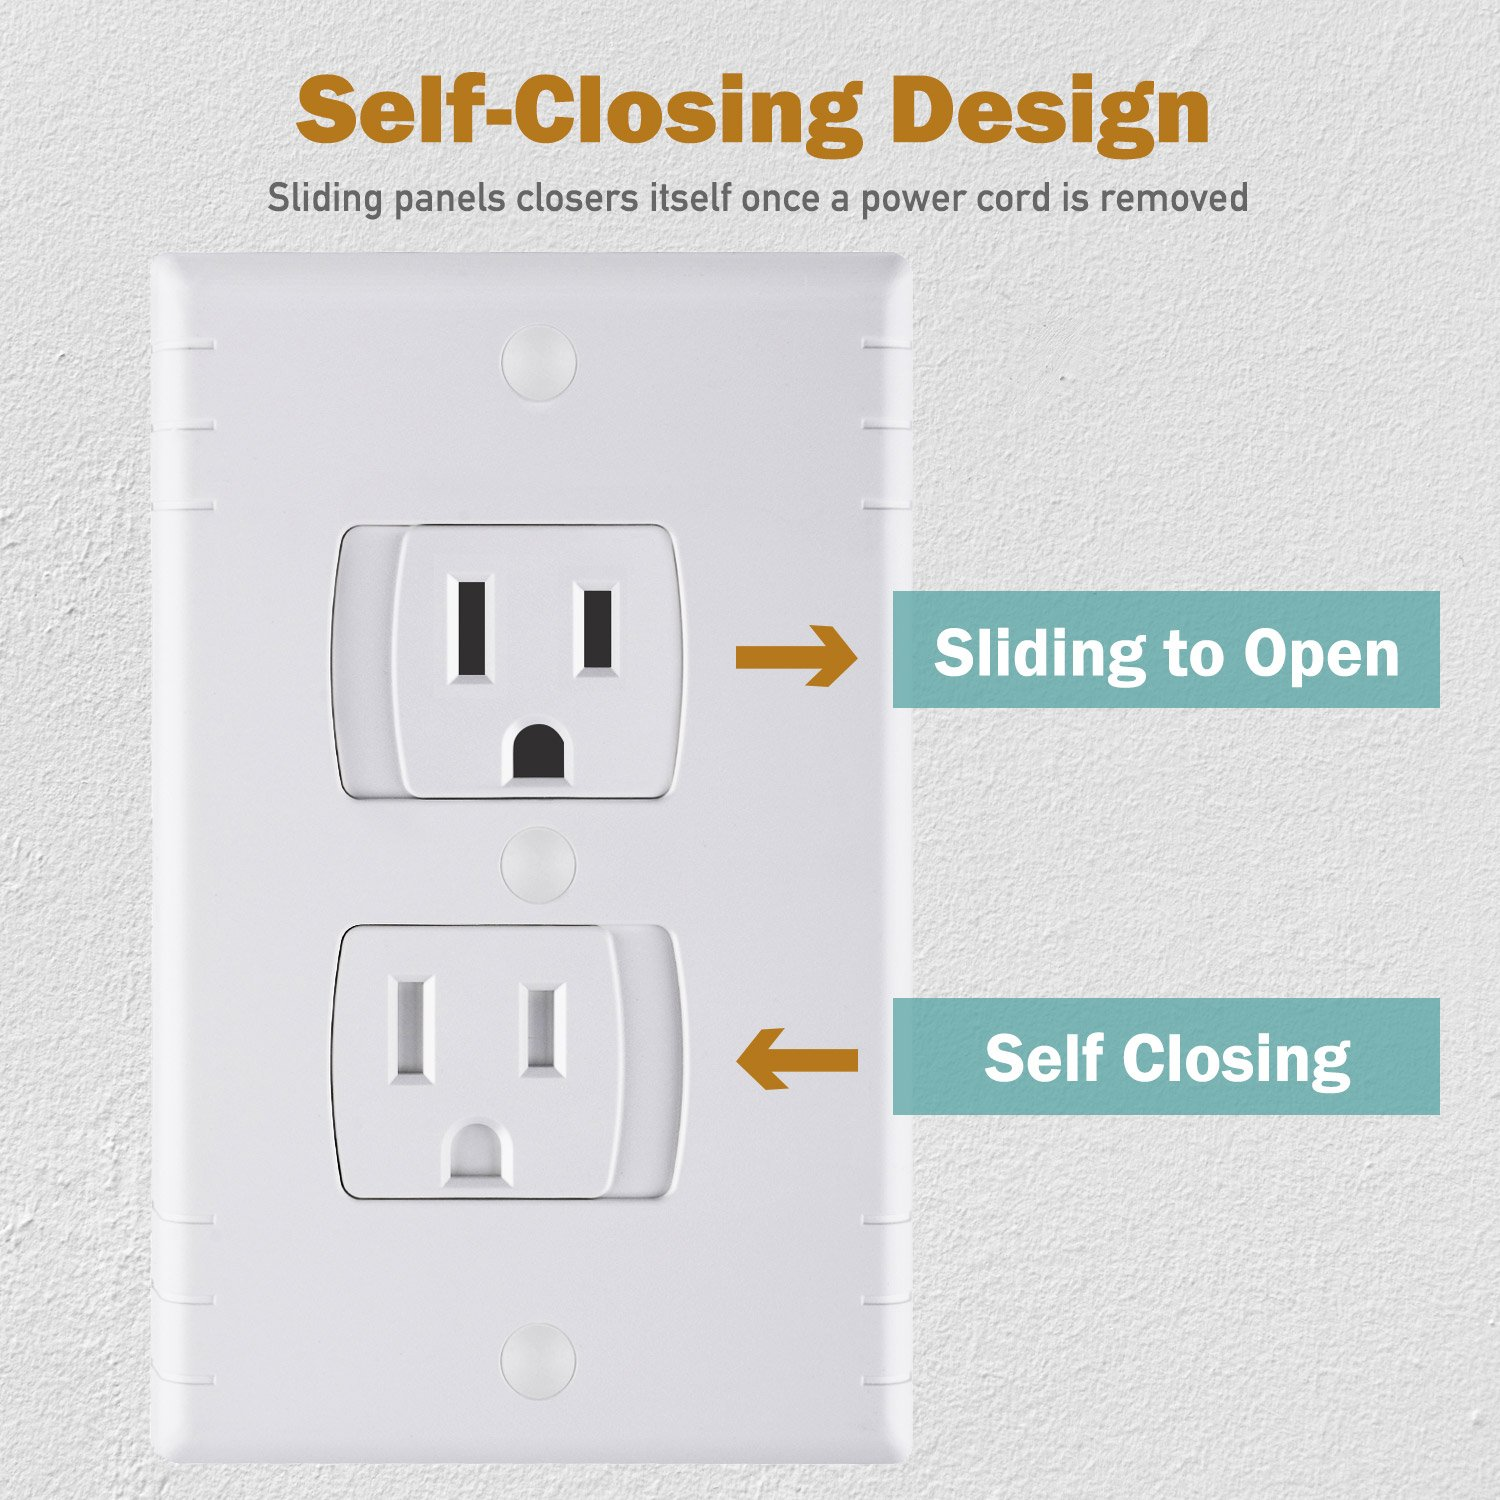 Universal Self Closing Electrical Outlet Covers Extra Nook Usb Cable Wiring Diagram Safe Retardant Child Safety Guards Socket Plugs Protector Bpa Free Hardware Included